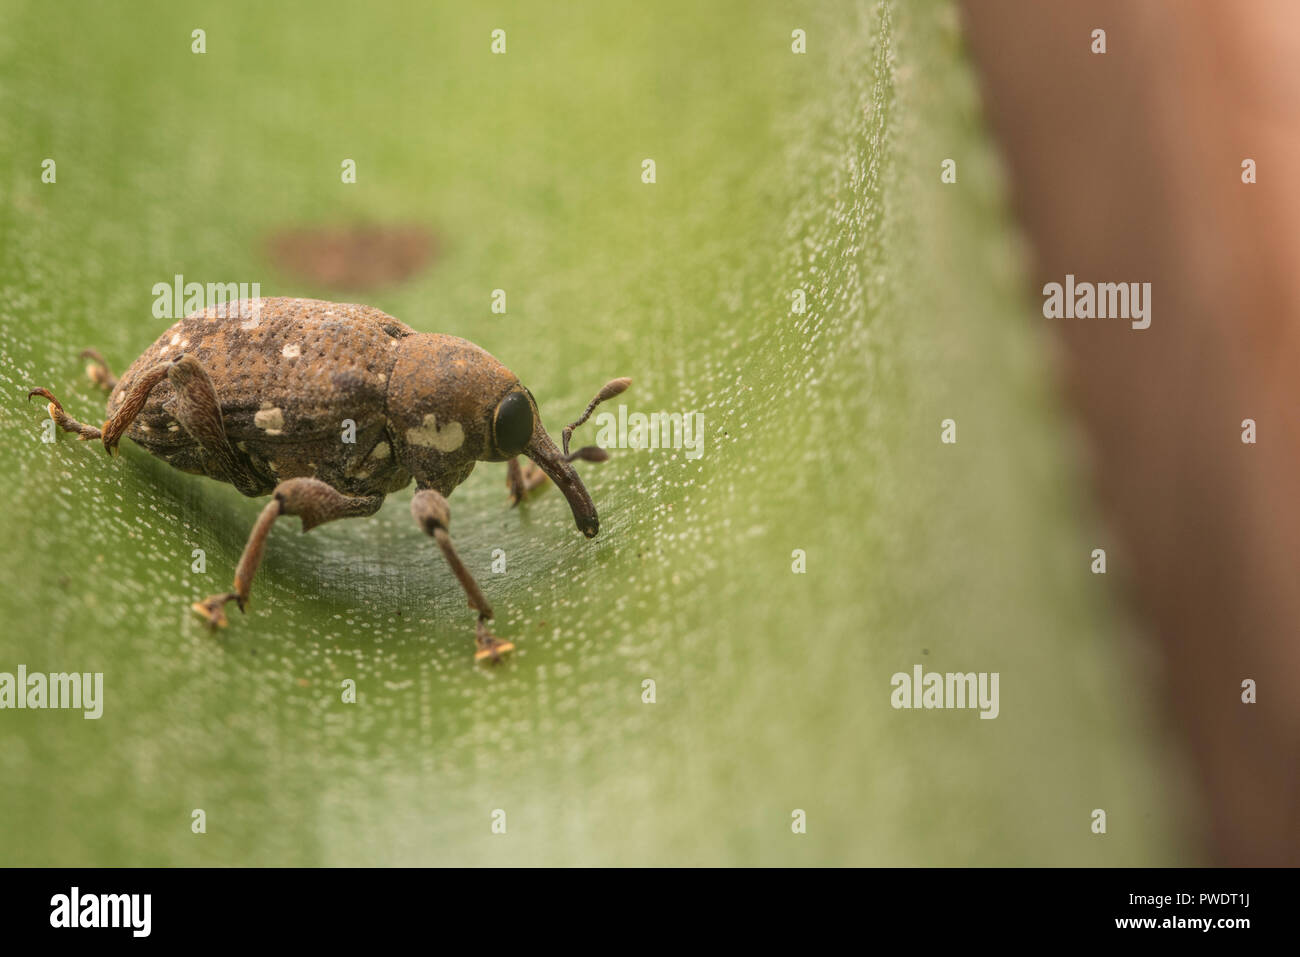 A small weevil found on a plant in Peru's Madre de Dios department. These beetles largely feed on plants and sap. - Stock Image